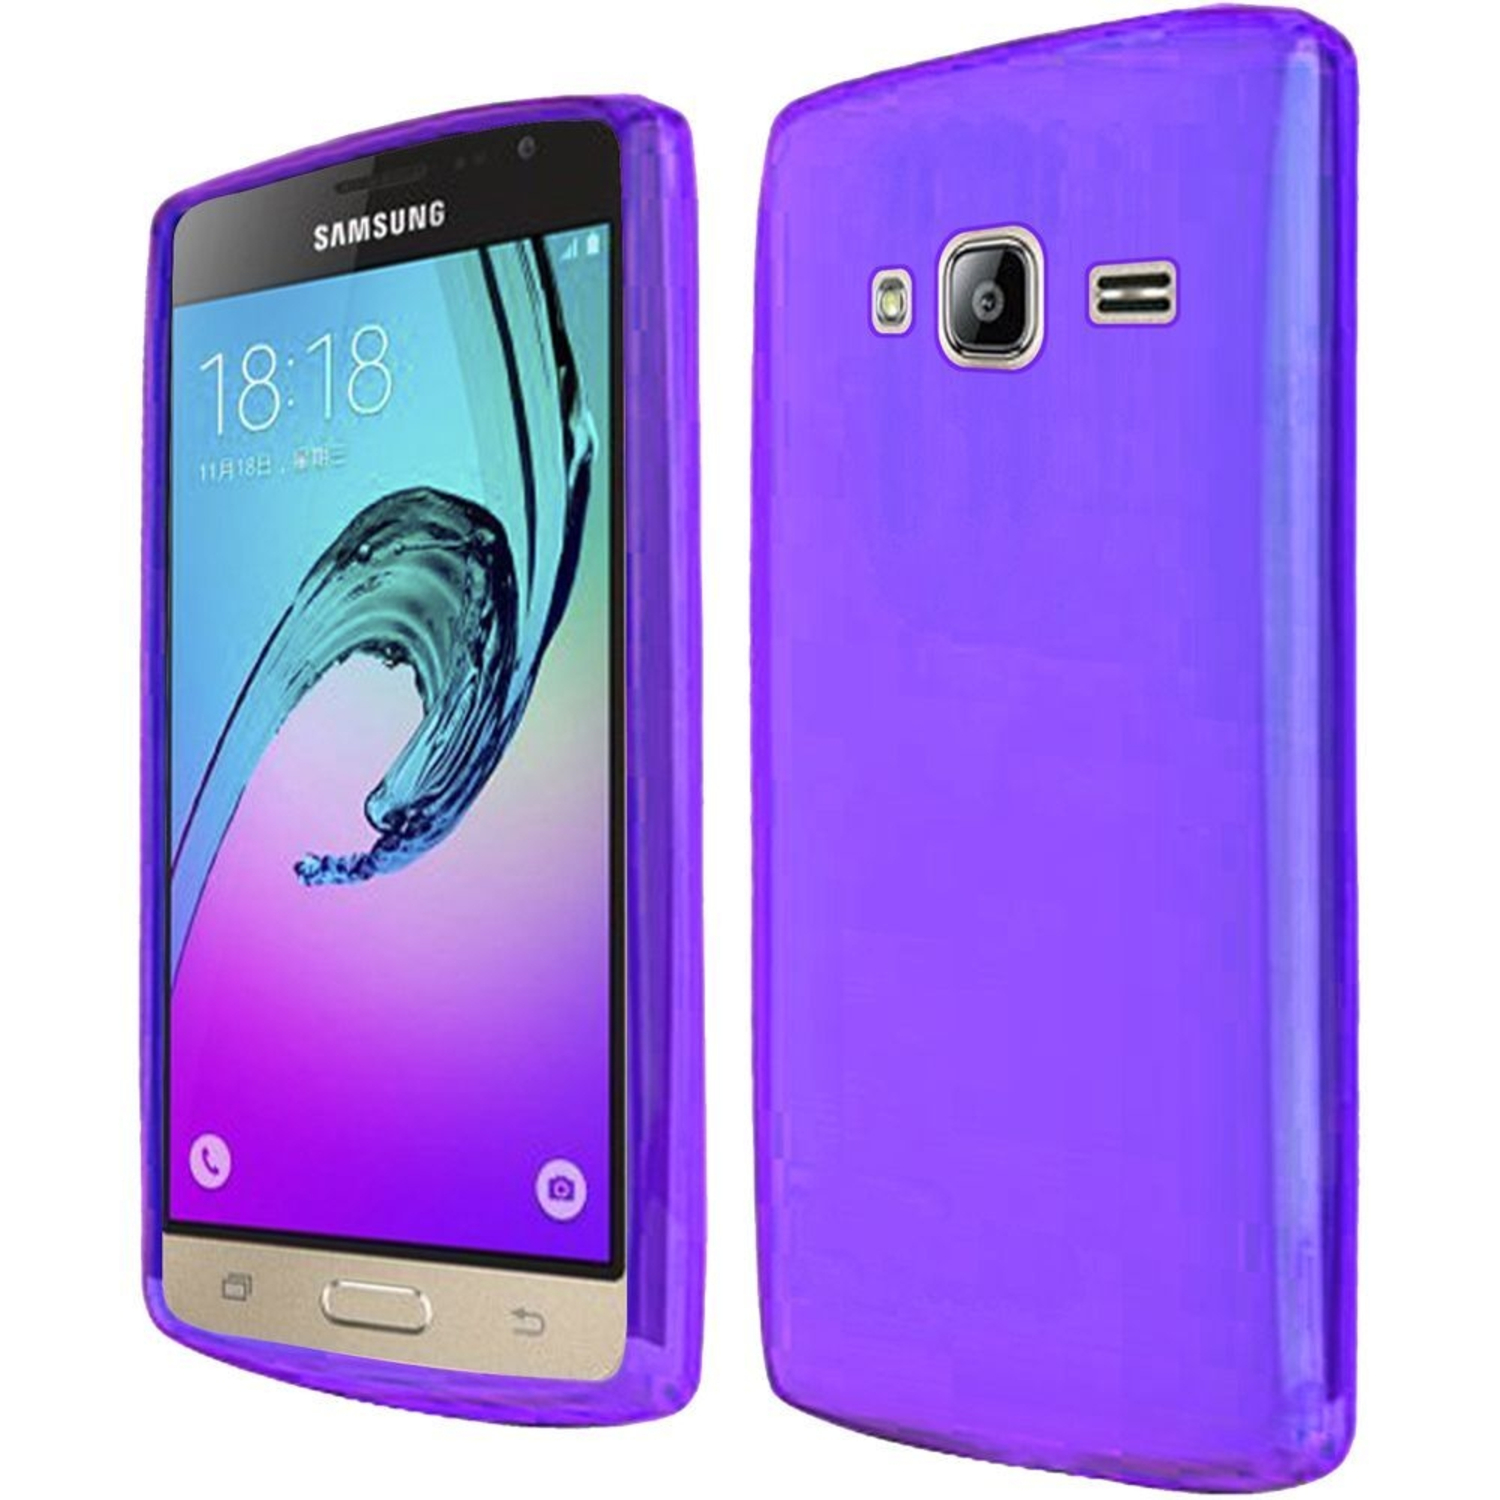 promo code fc4a9 8bb1a Insten Frosted TPU Case For Samsung Galaxy Amp Prime / J3 (2016) - Purple